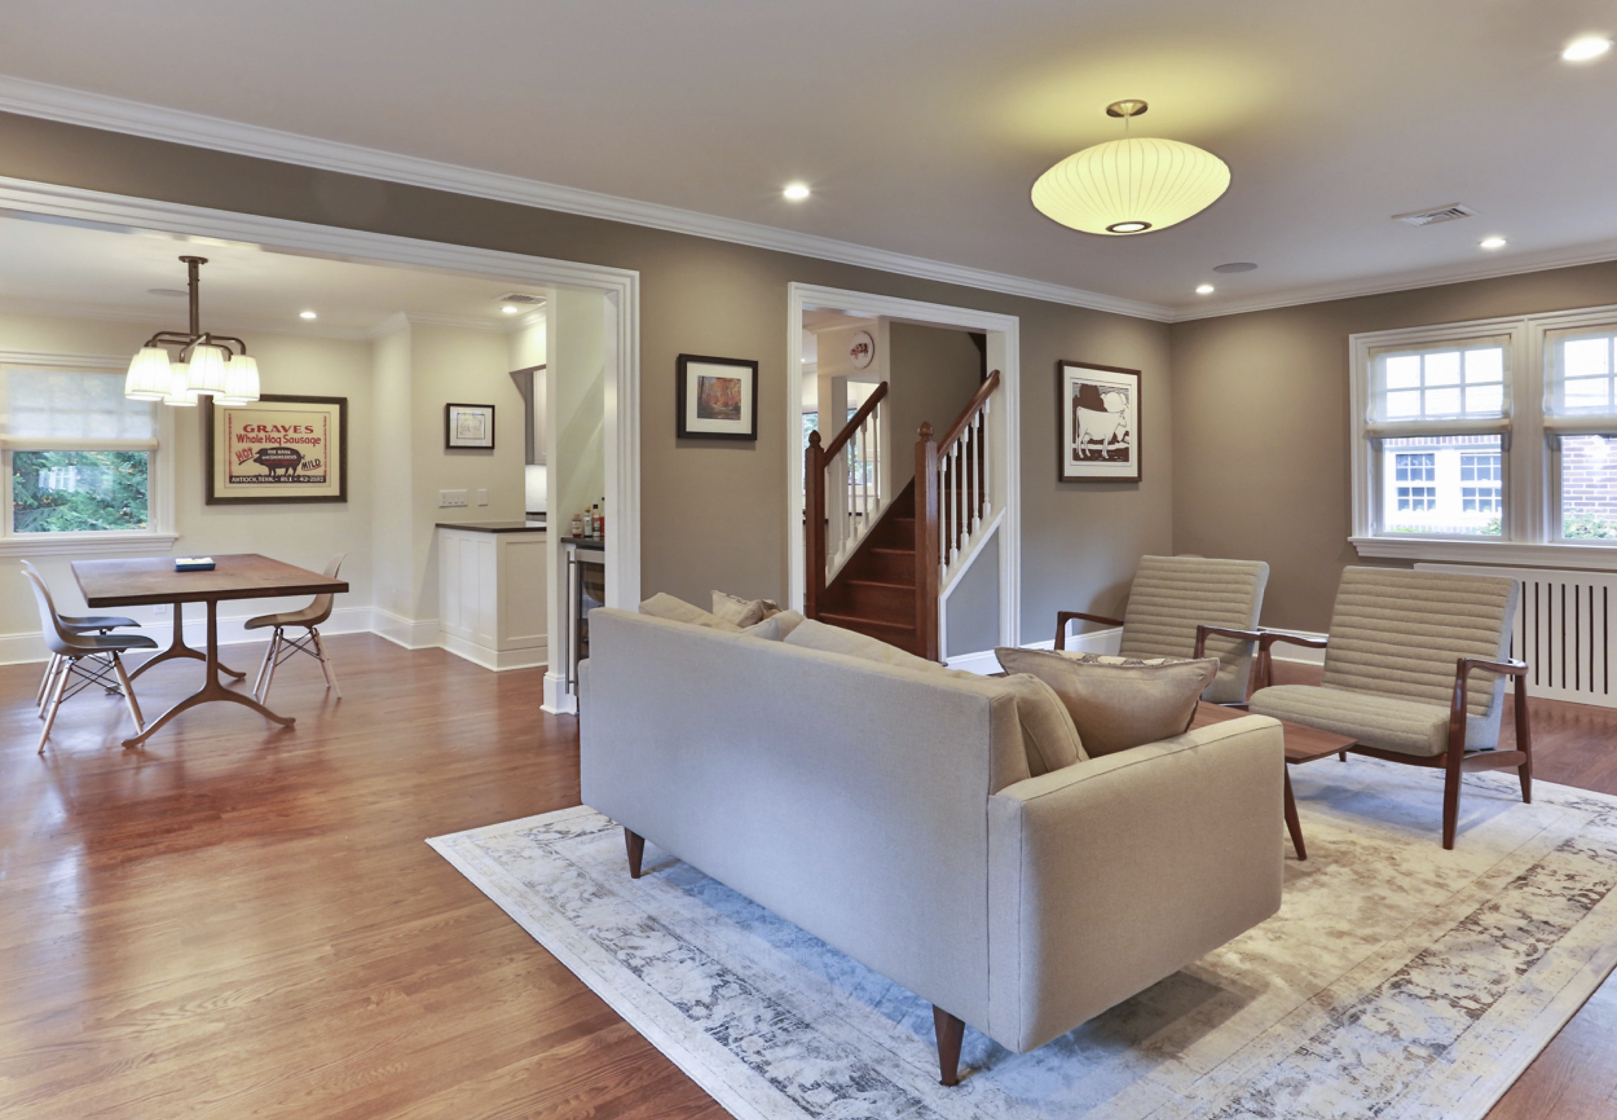 open plan staircase in living room images of transitional rooms renovation for dan and john life